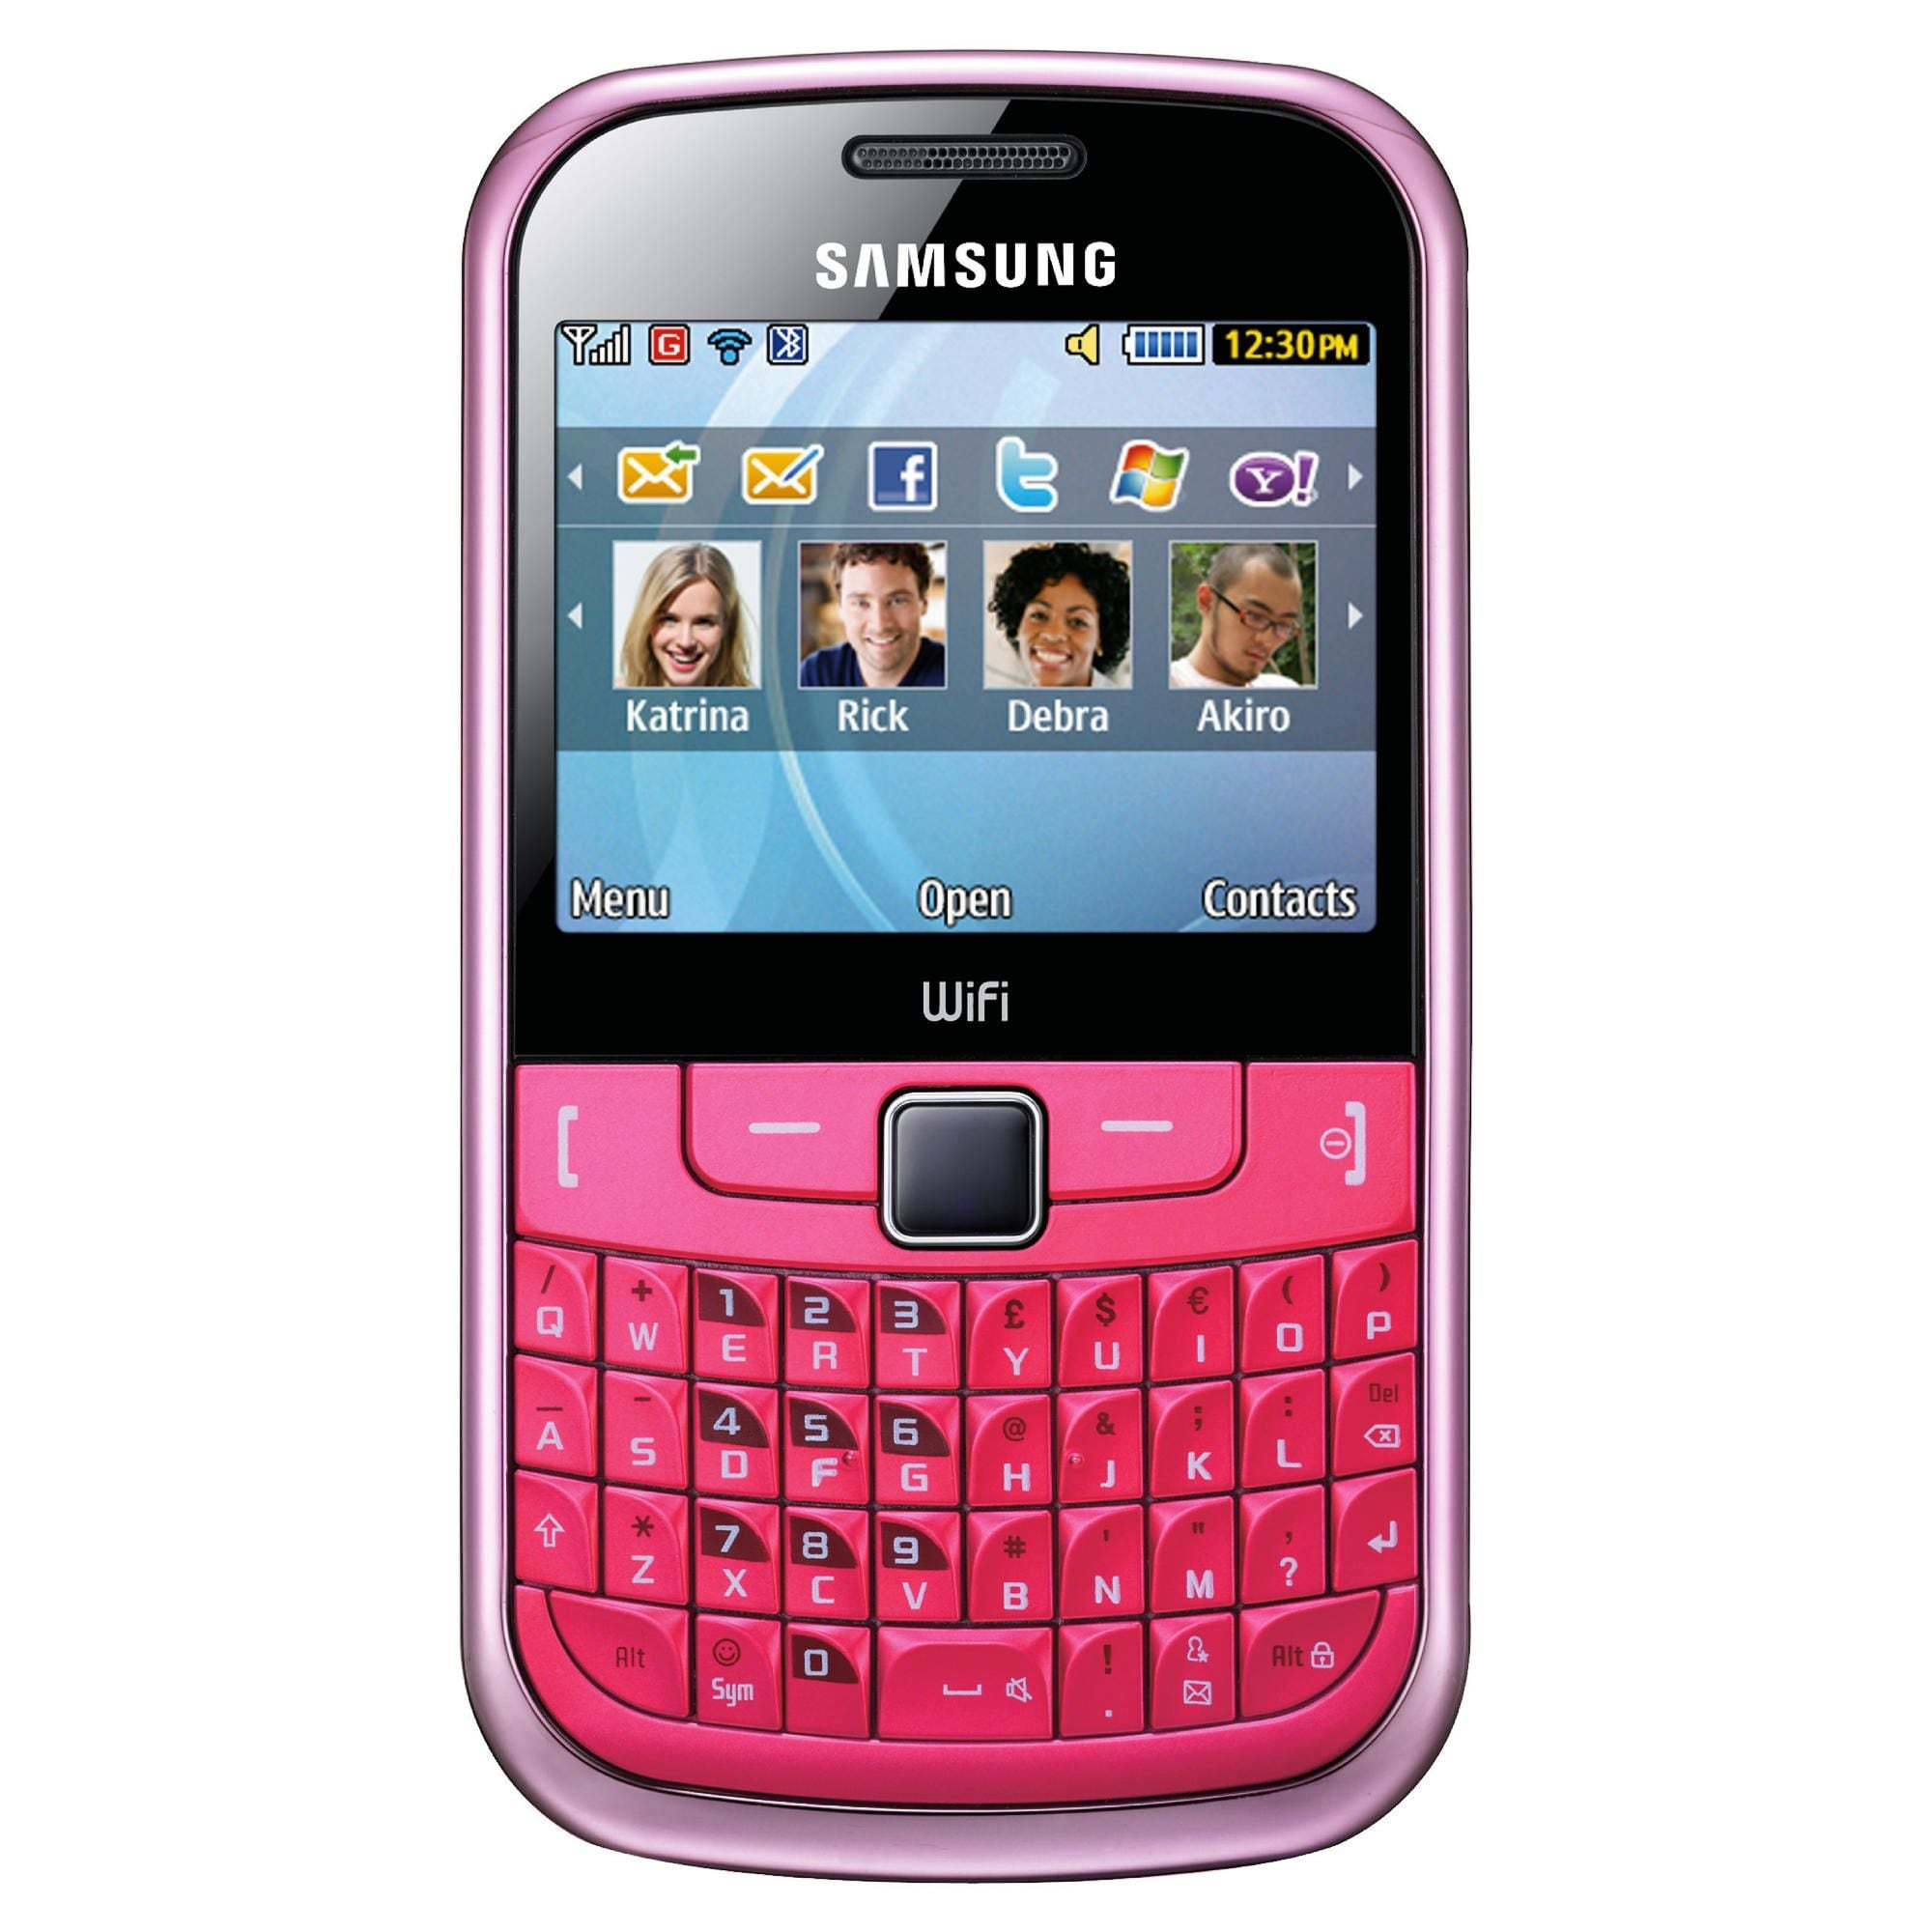 Samsung Ch@t 335 S3350 GSM Unlocked Cell Phone - Pink